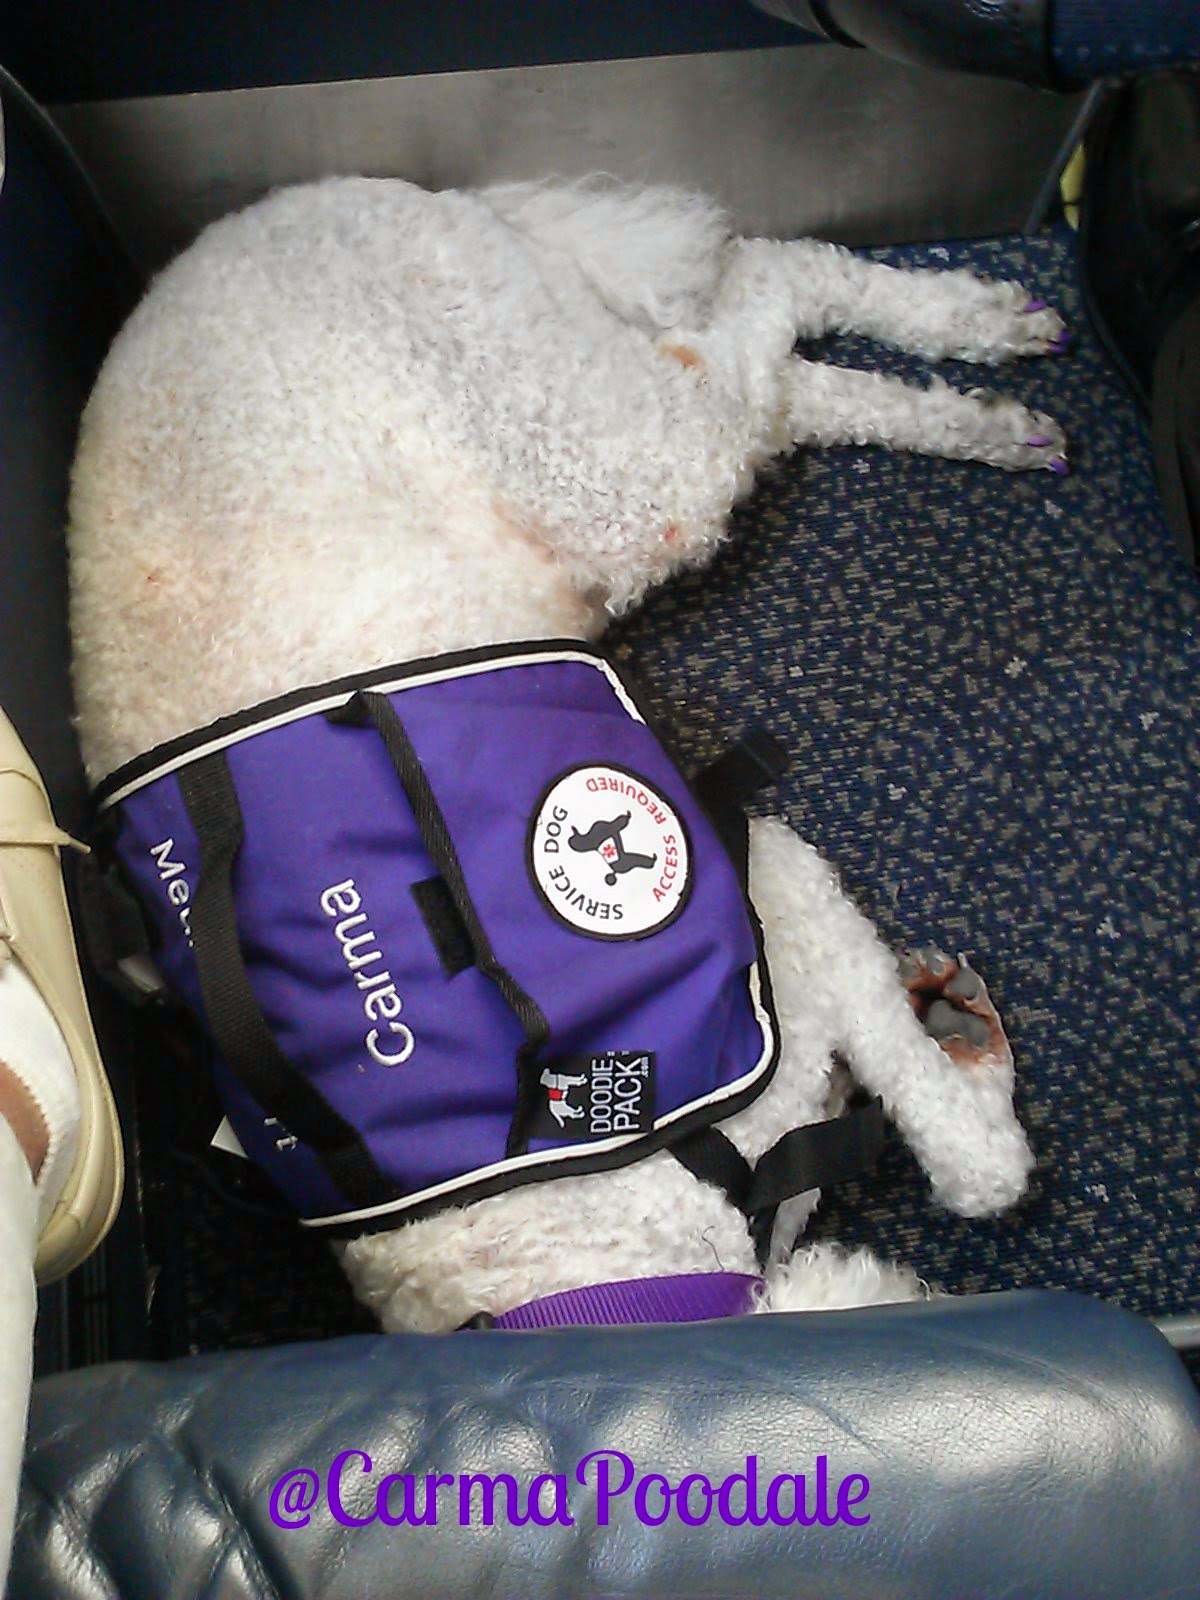 carma sleeping on plane